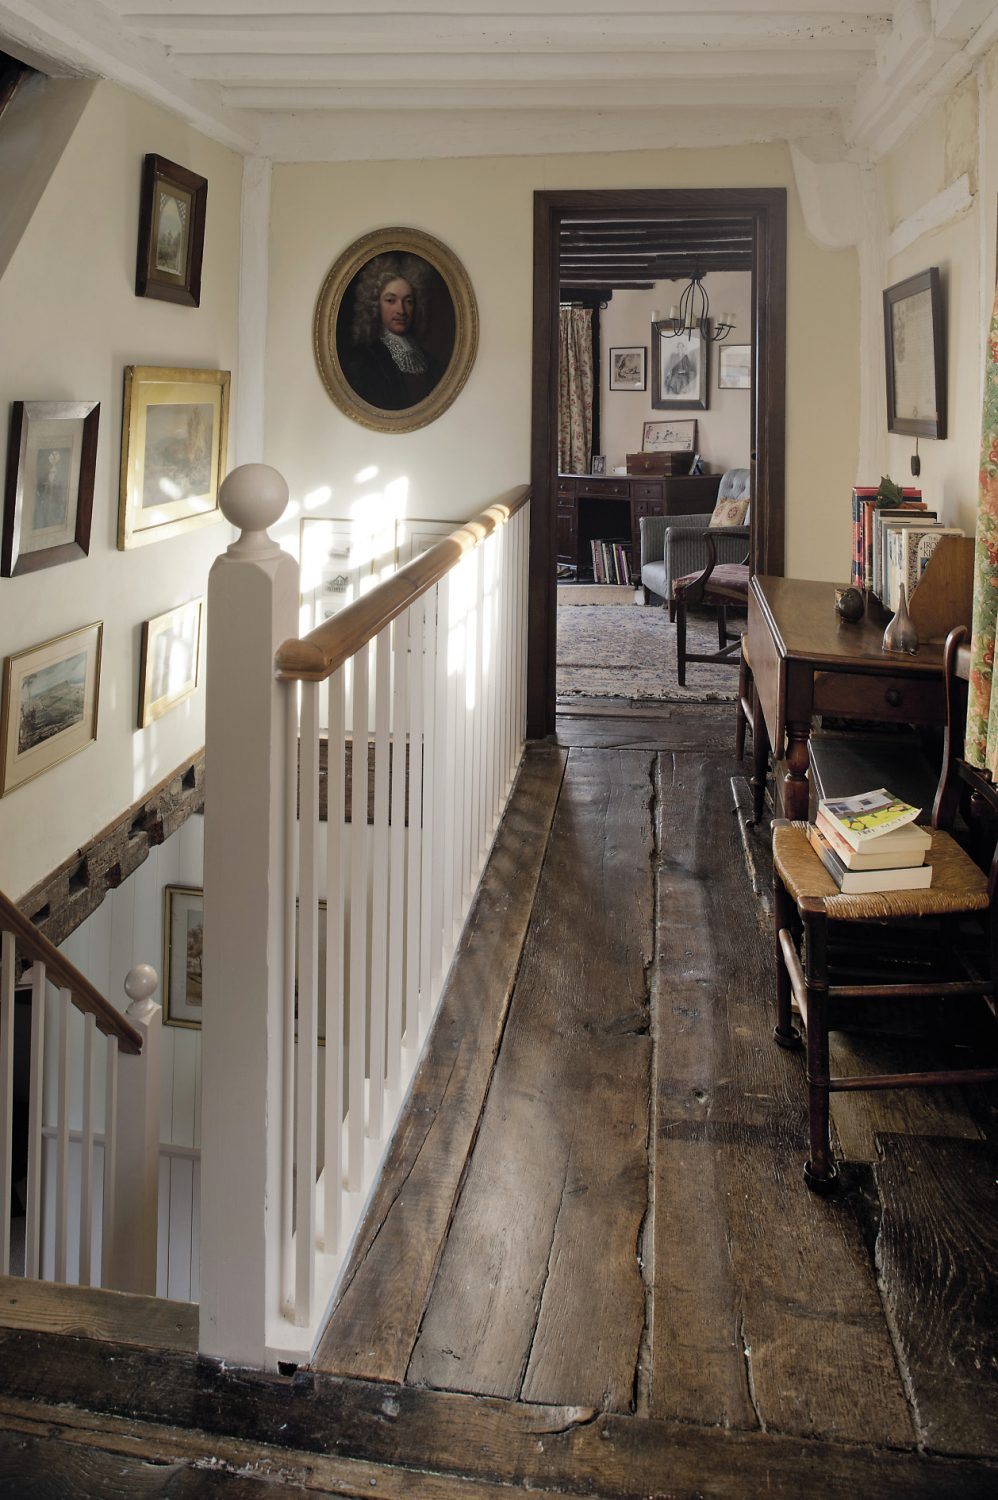 The floorboards here on the landing are almost two feet wide and career off at a comically steep angle towards the oriel window in the guest bedroom